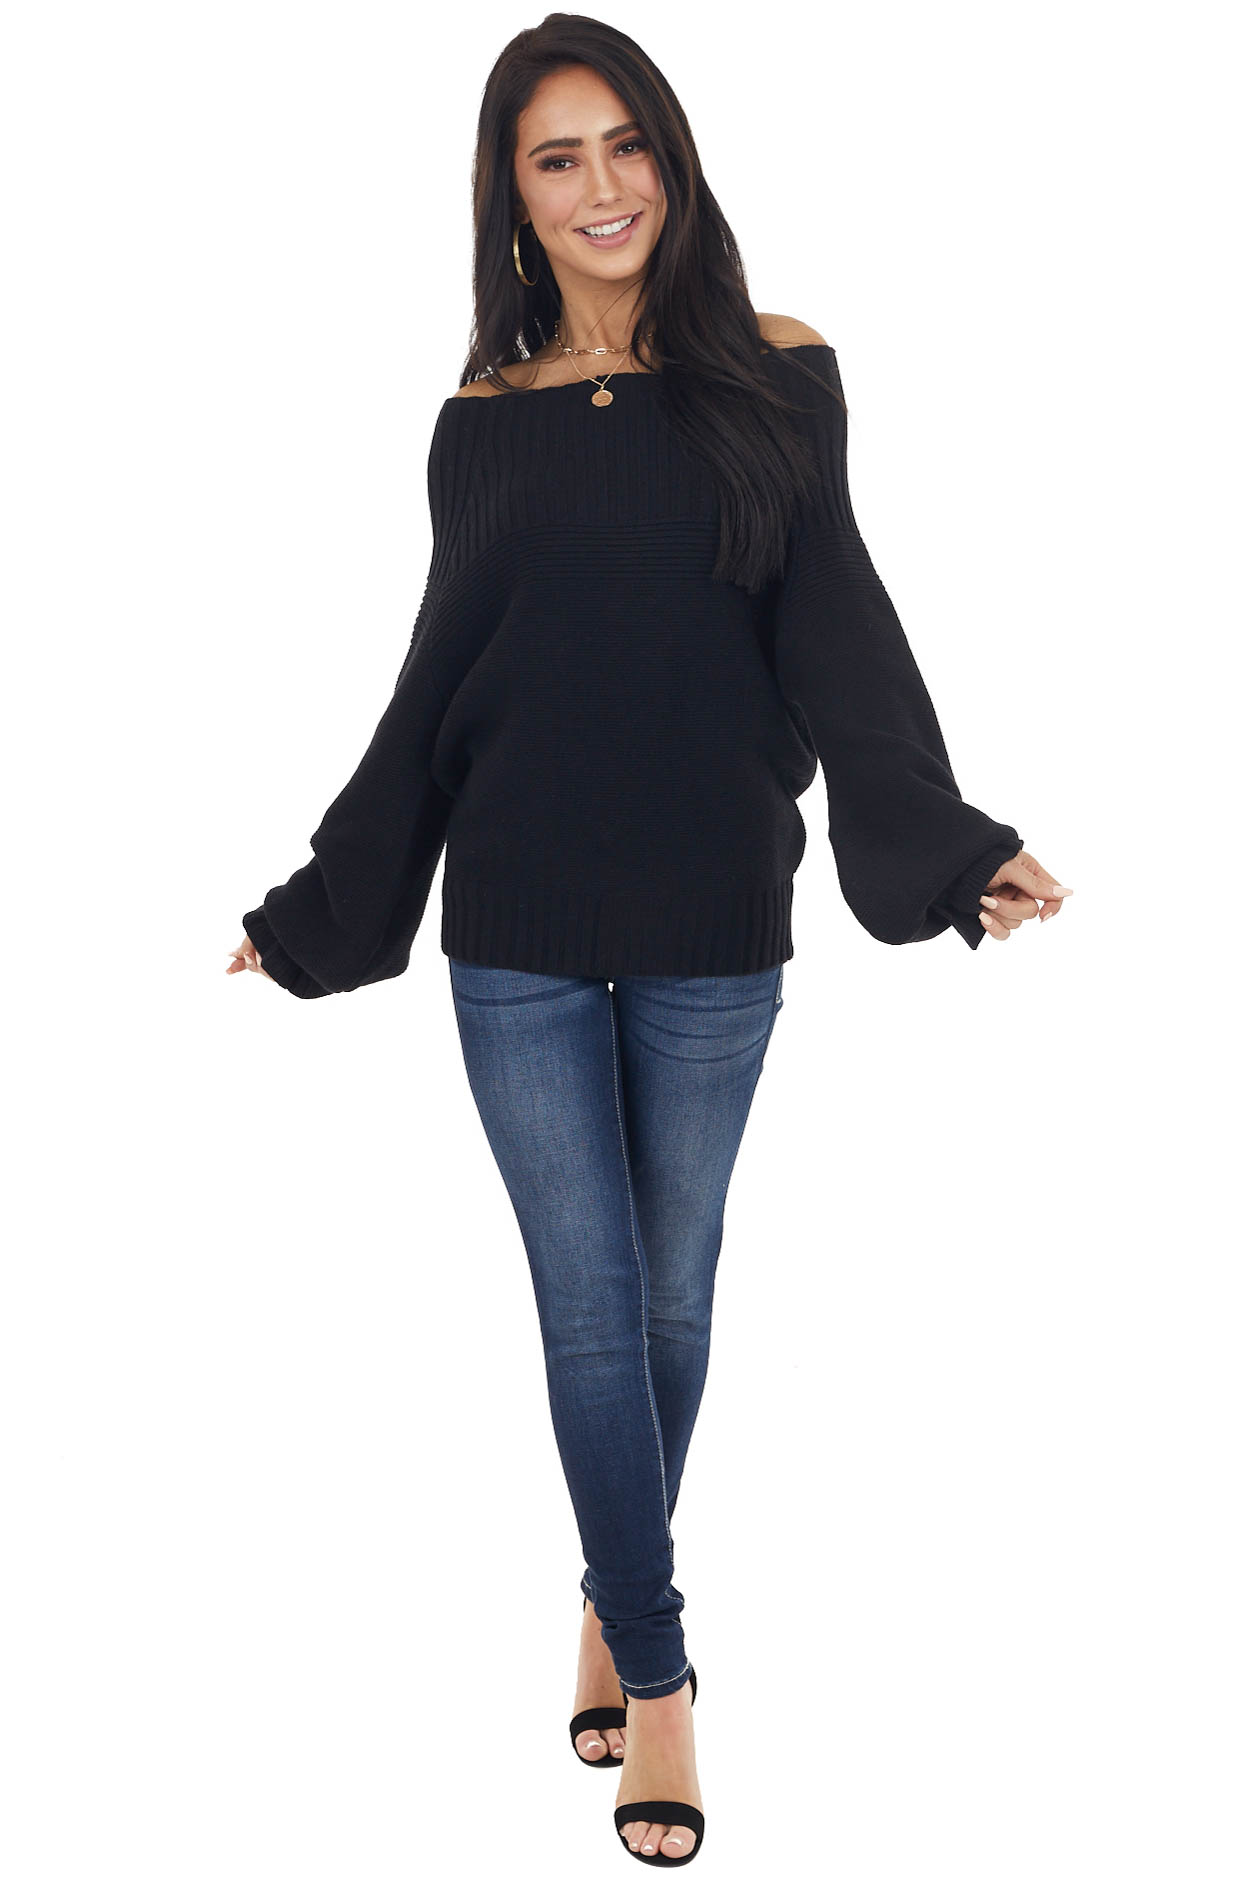 Black Off Shoulder Sweater with Long Ruffle Bubble Sleeves